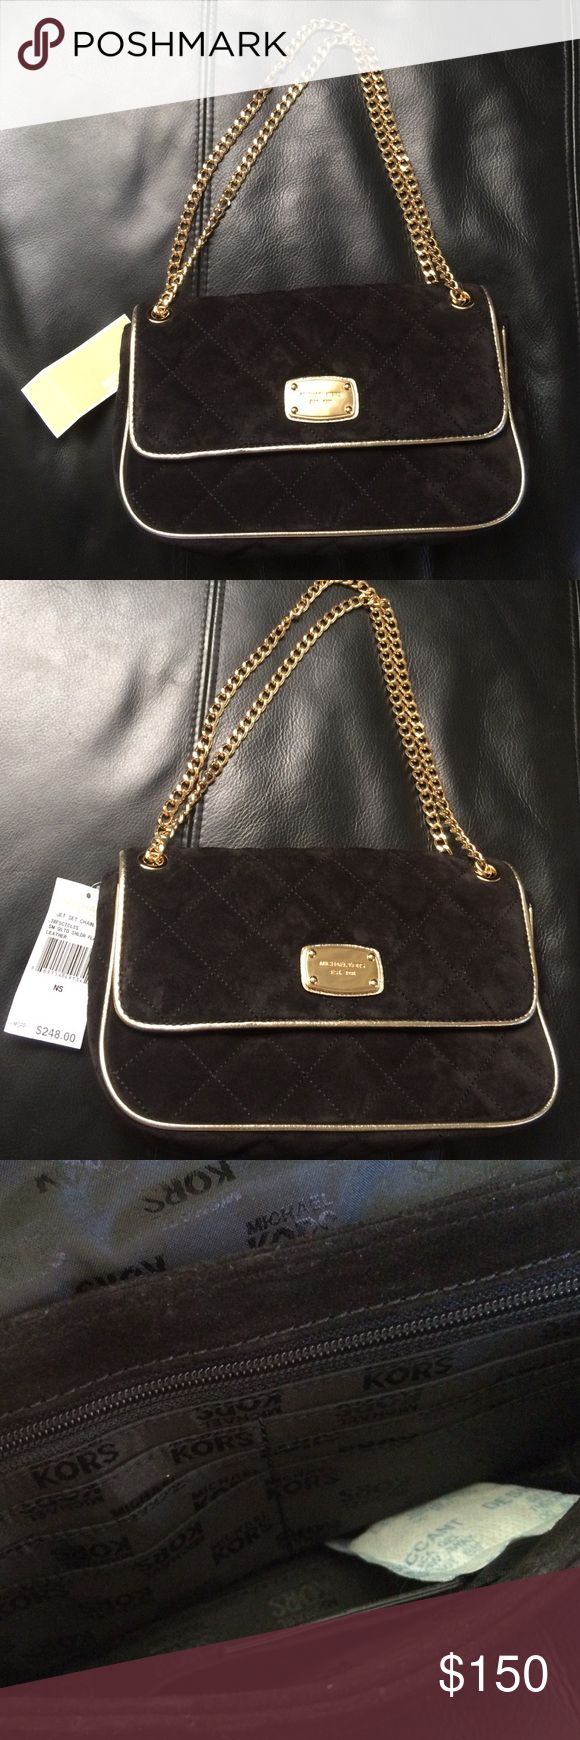 Michael Kors JetSet quilted chain leather bag NWT New with tags! Michael Kors Jet Set Chain item leather shoulder bag. Great condition! Suede/leather with gold chain straps. Michael Kors Bags Crossbody Bags